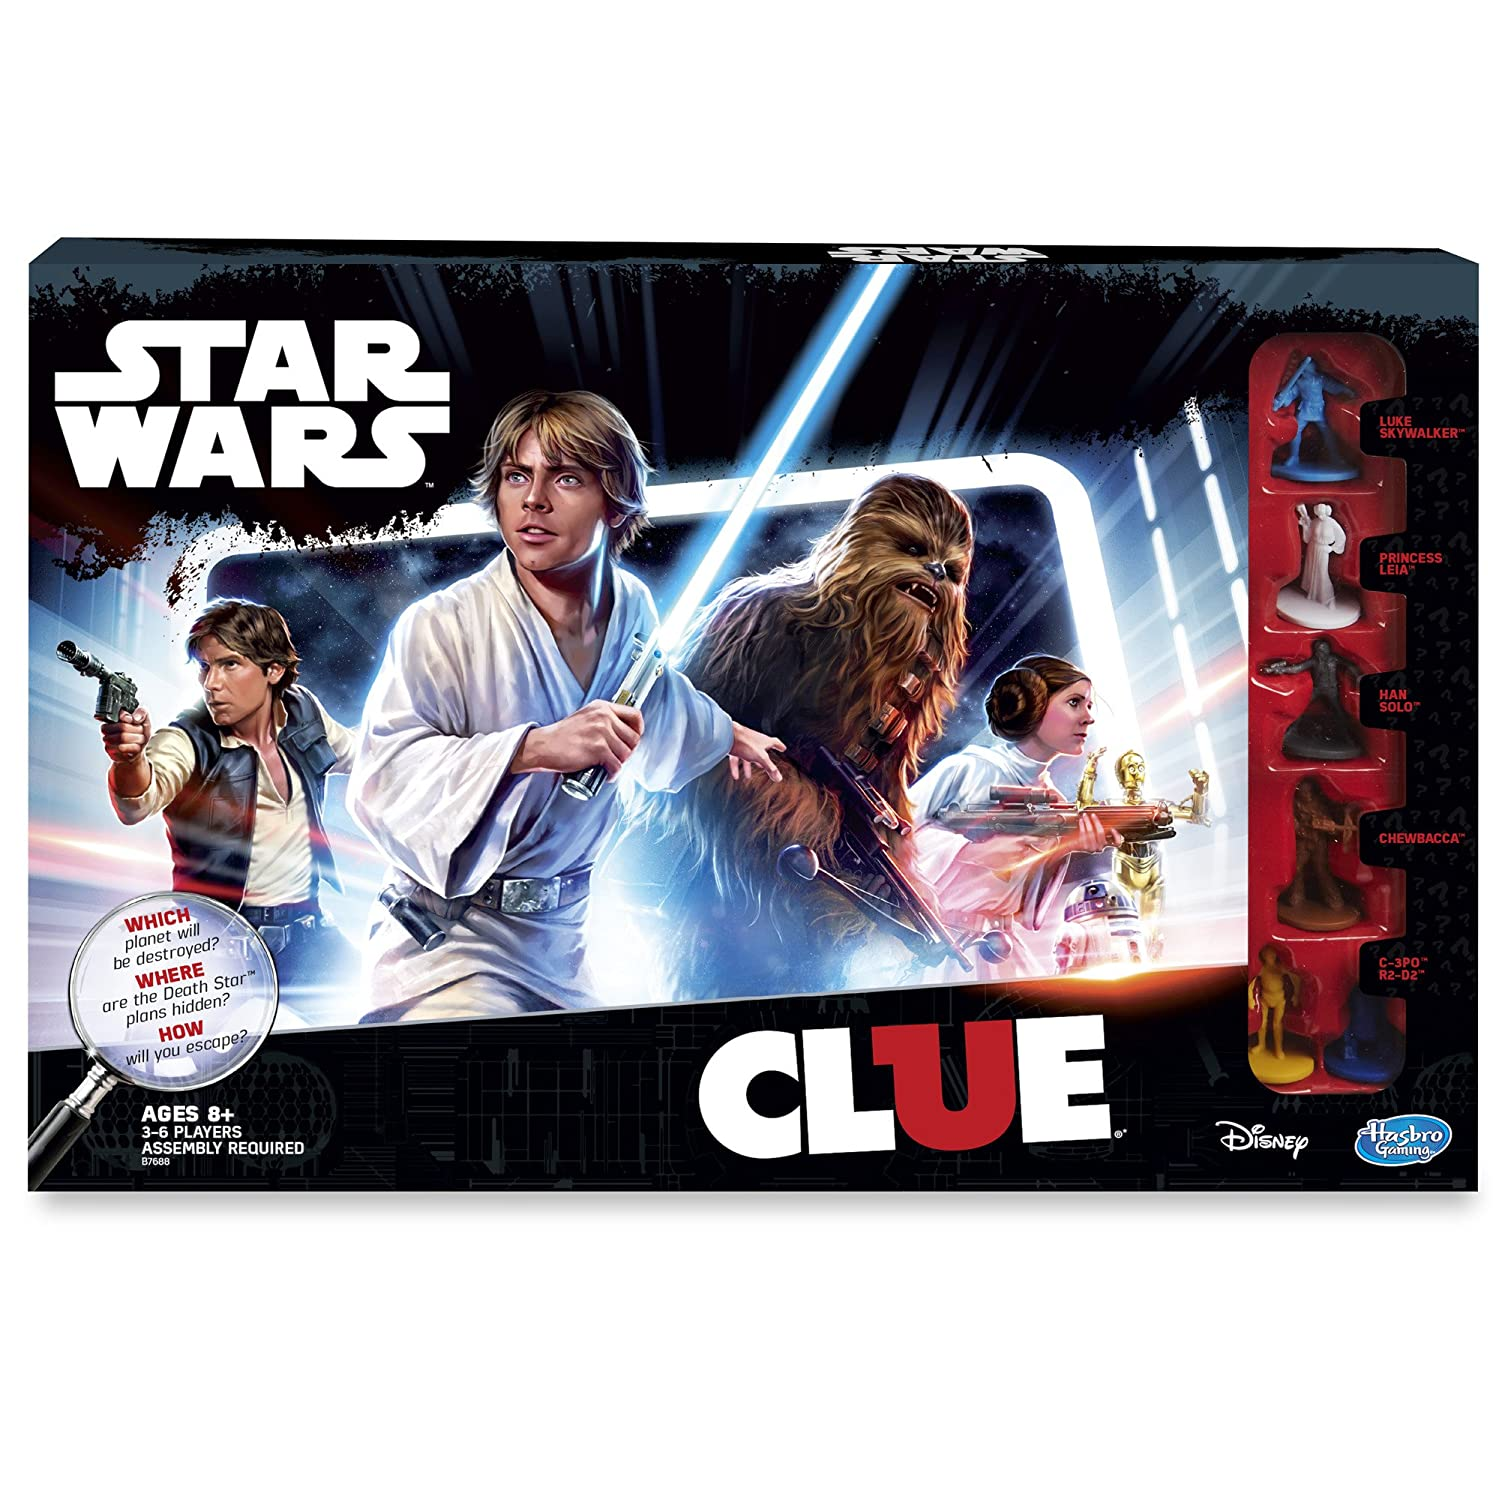 Star Wars Edition Clue Game